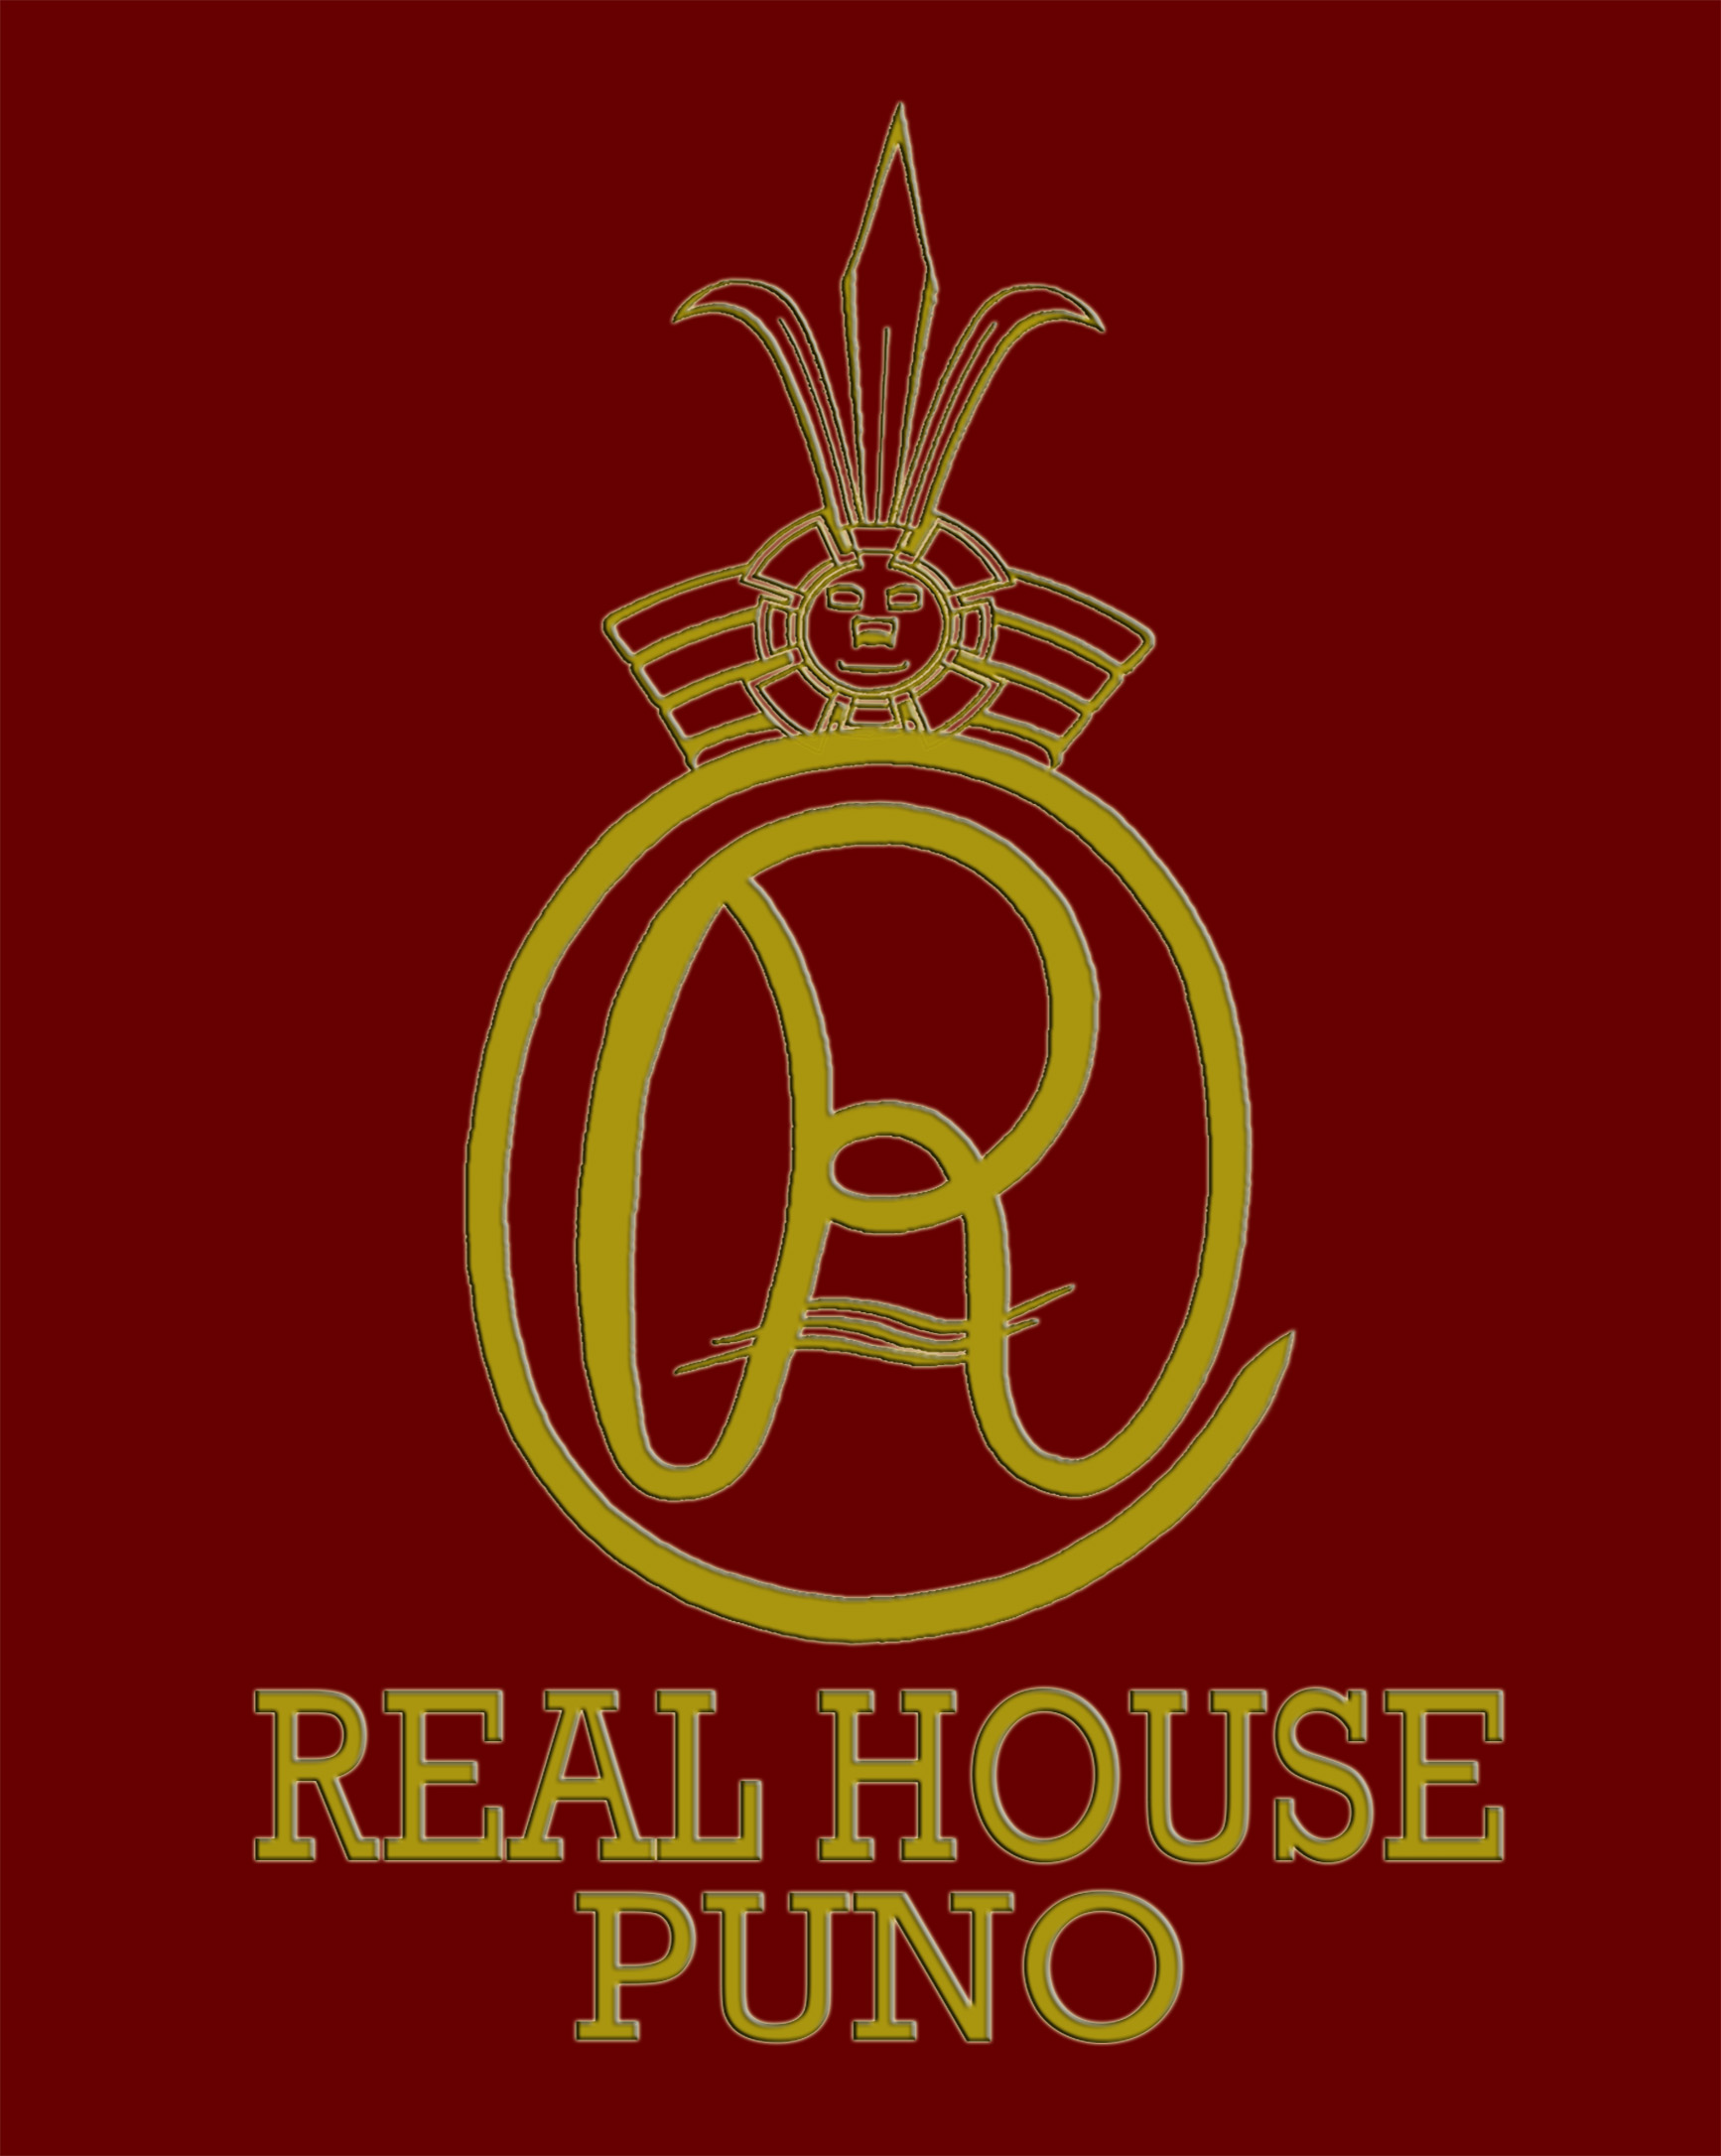 The Real House Puno